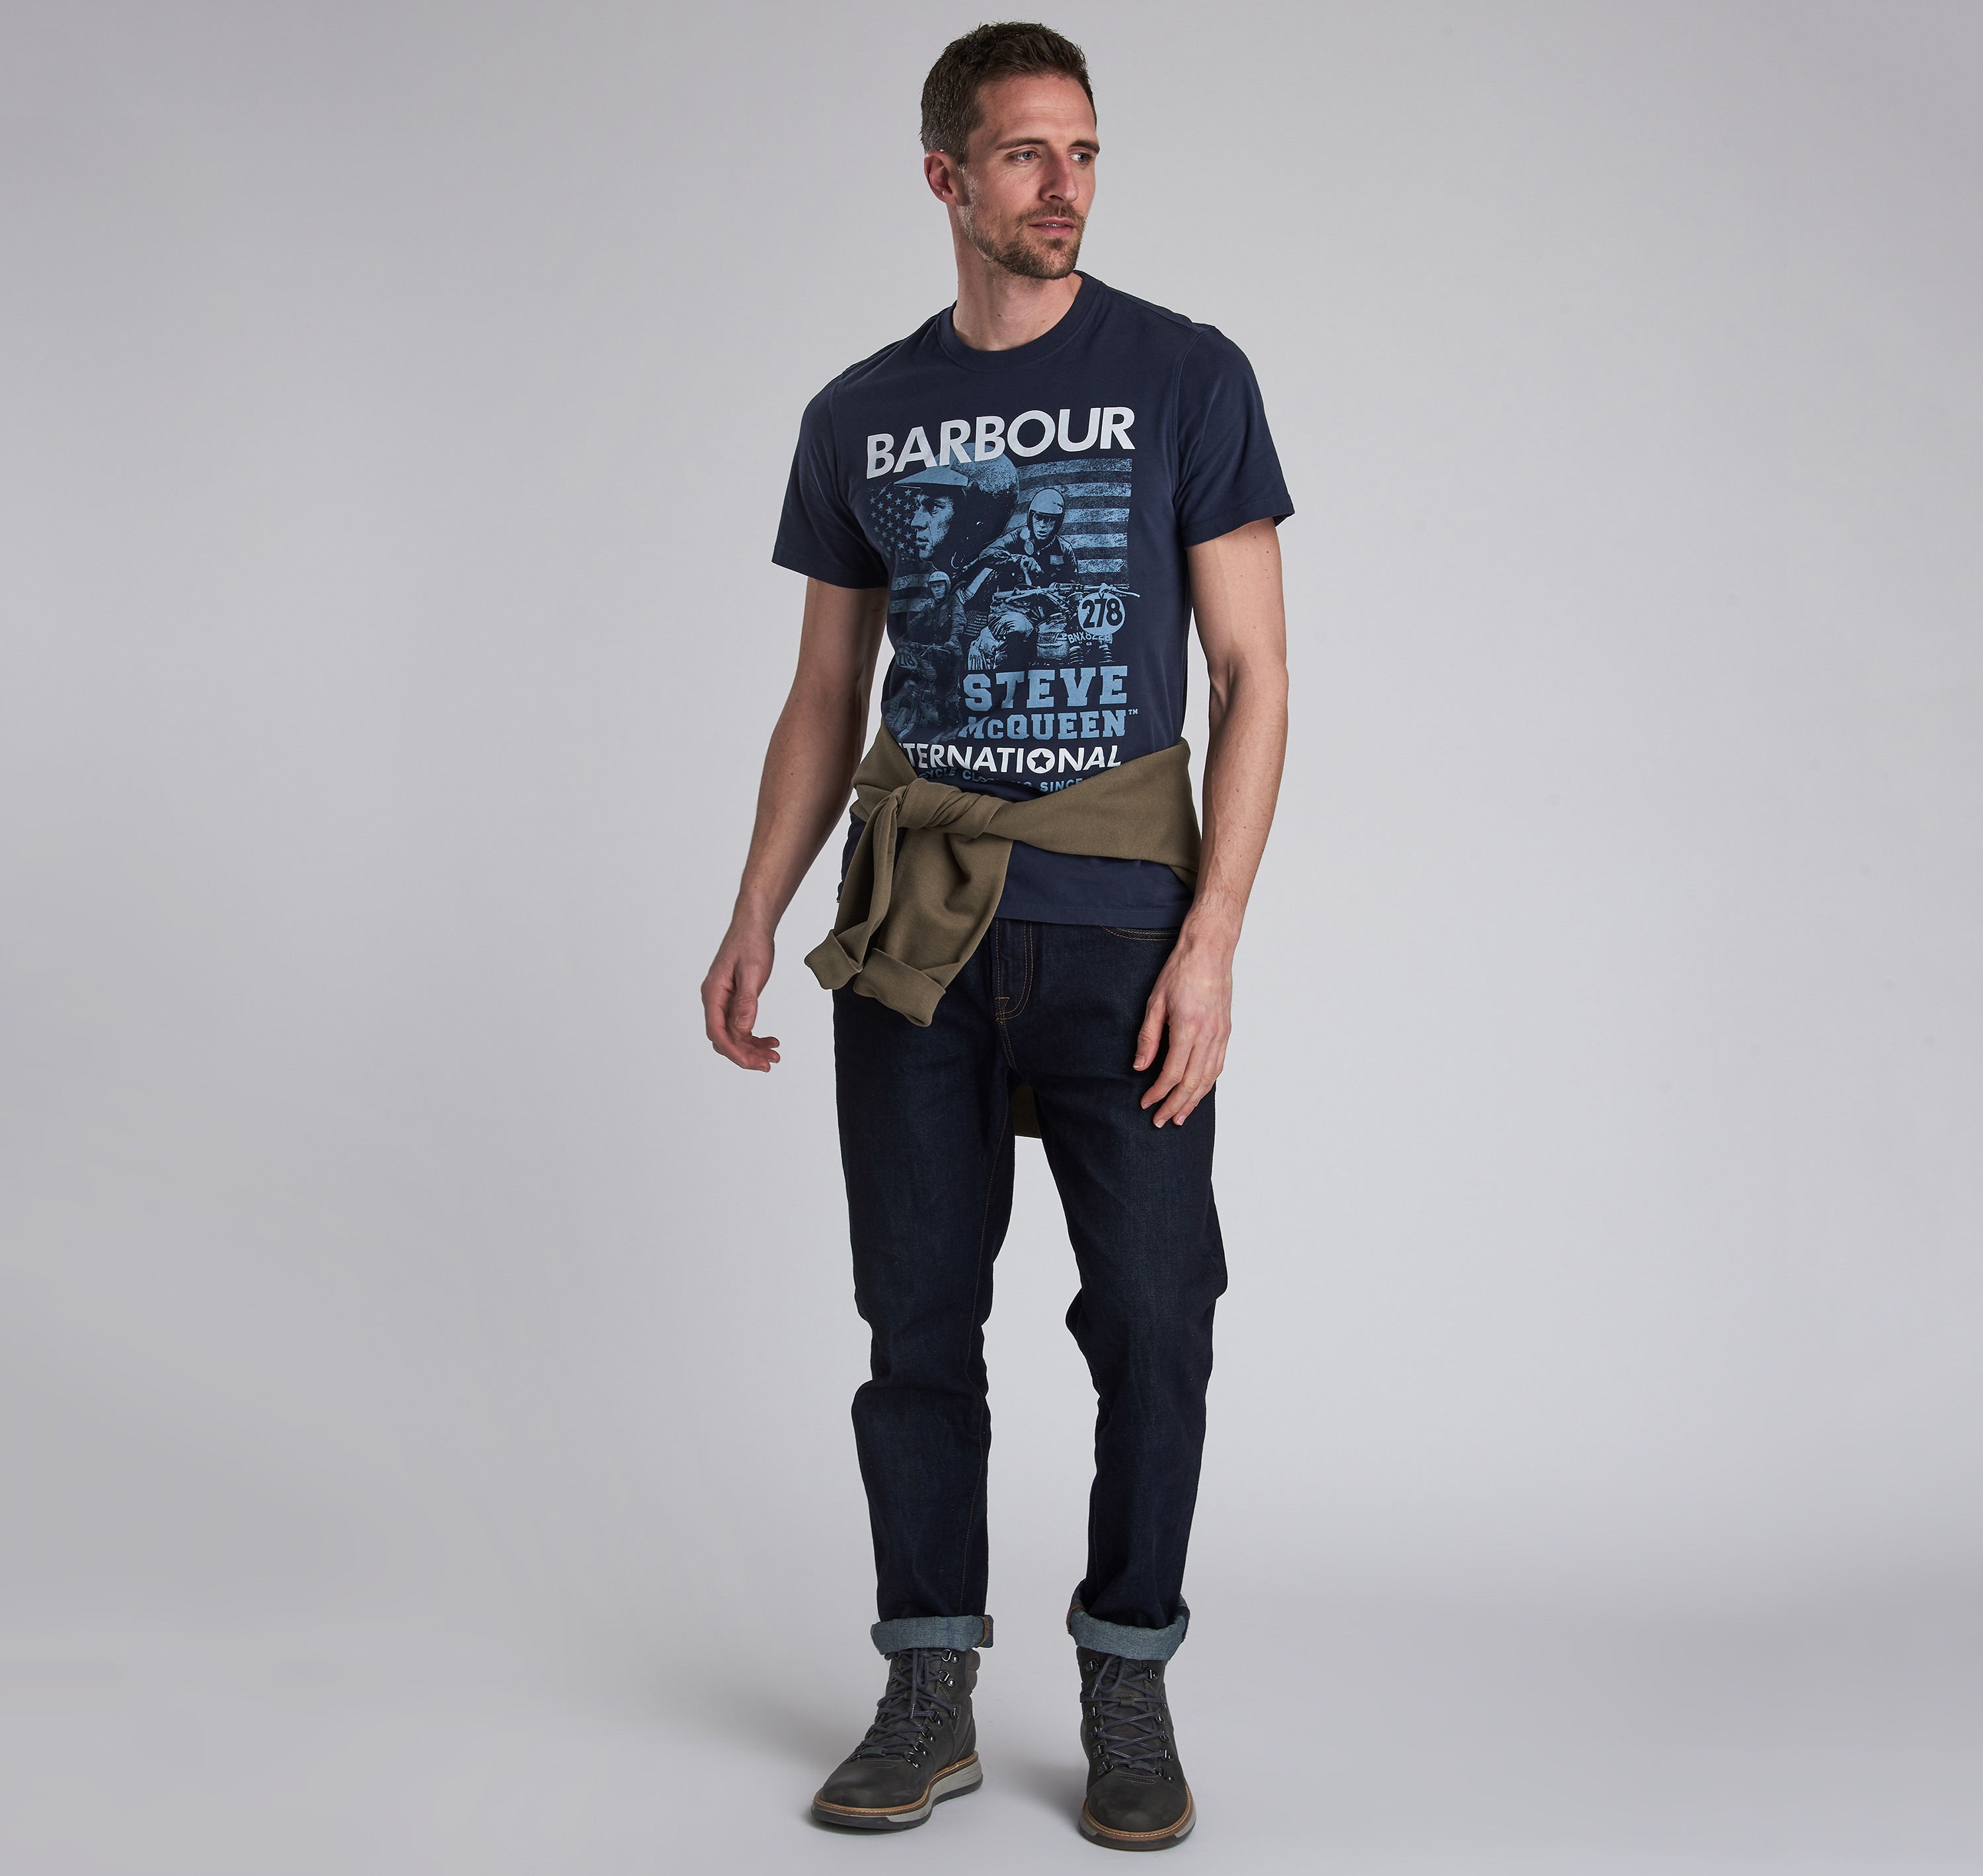 Barbour Collage T-Shirt